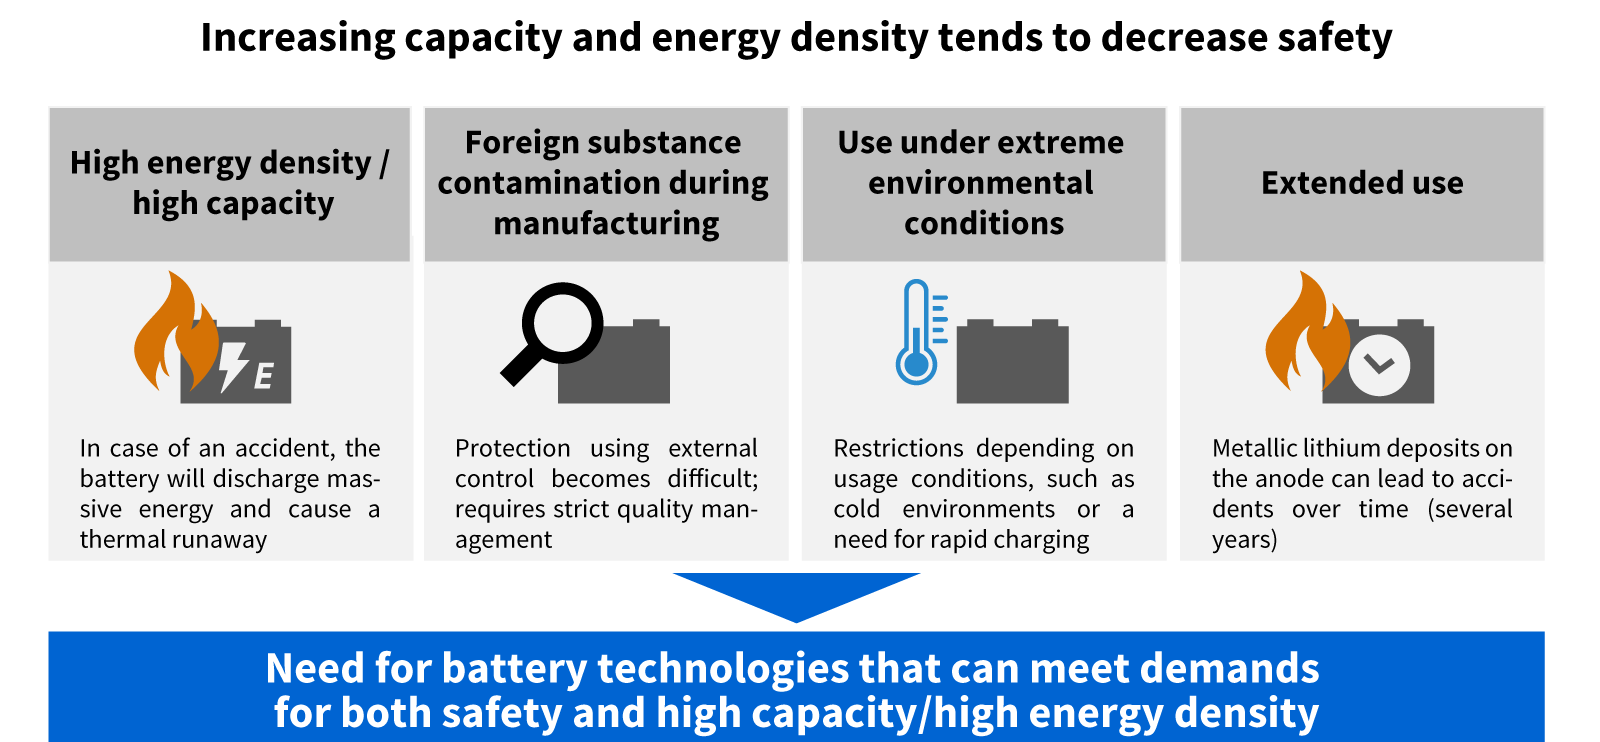 Increasing capacity and energy density tends to decrease safety